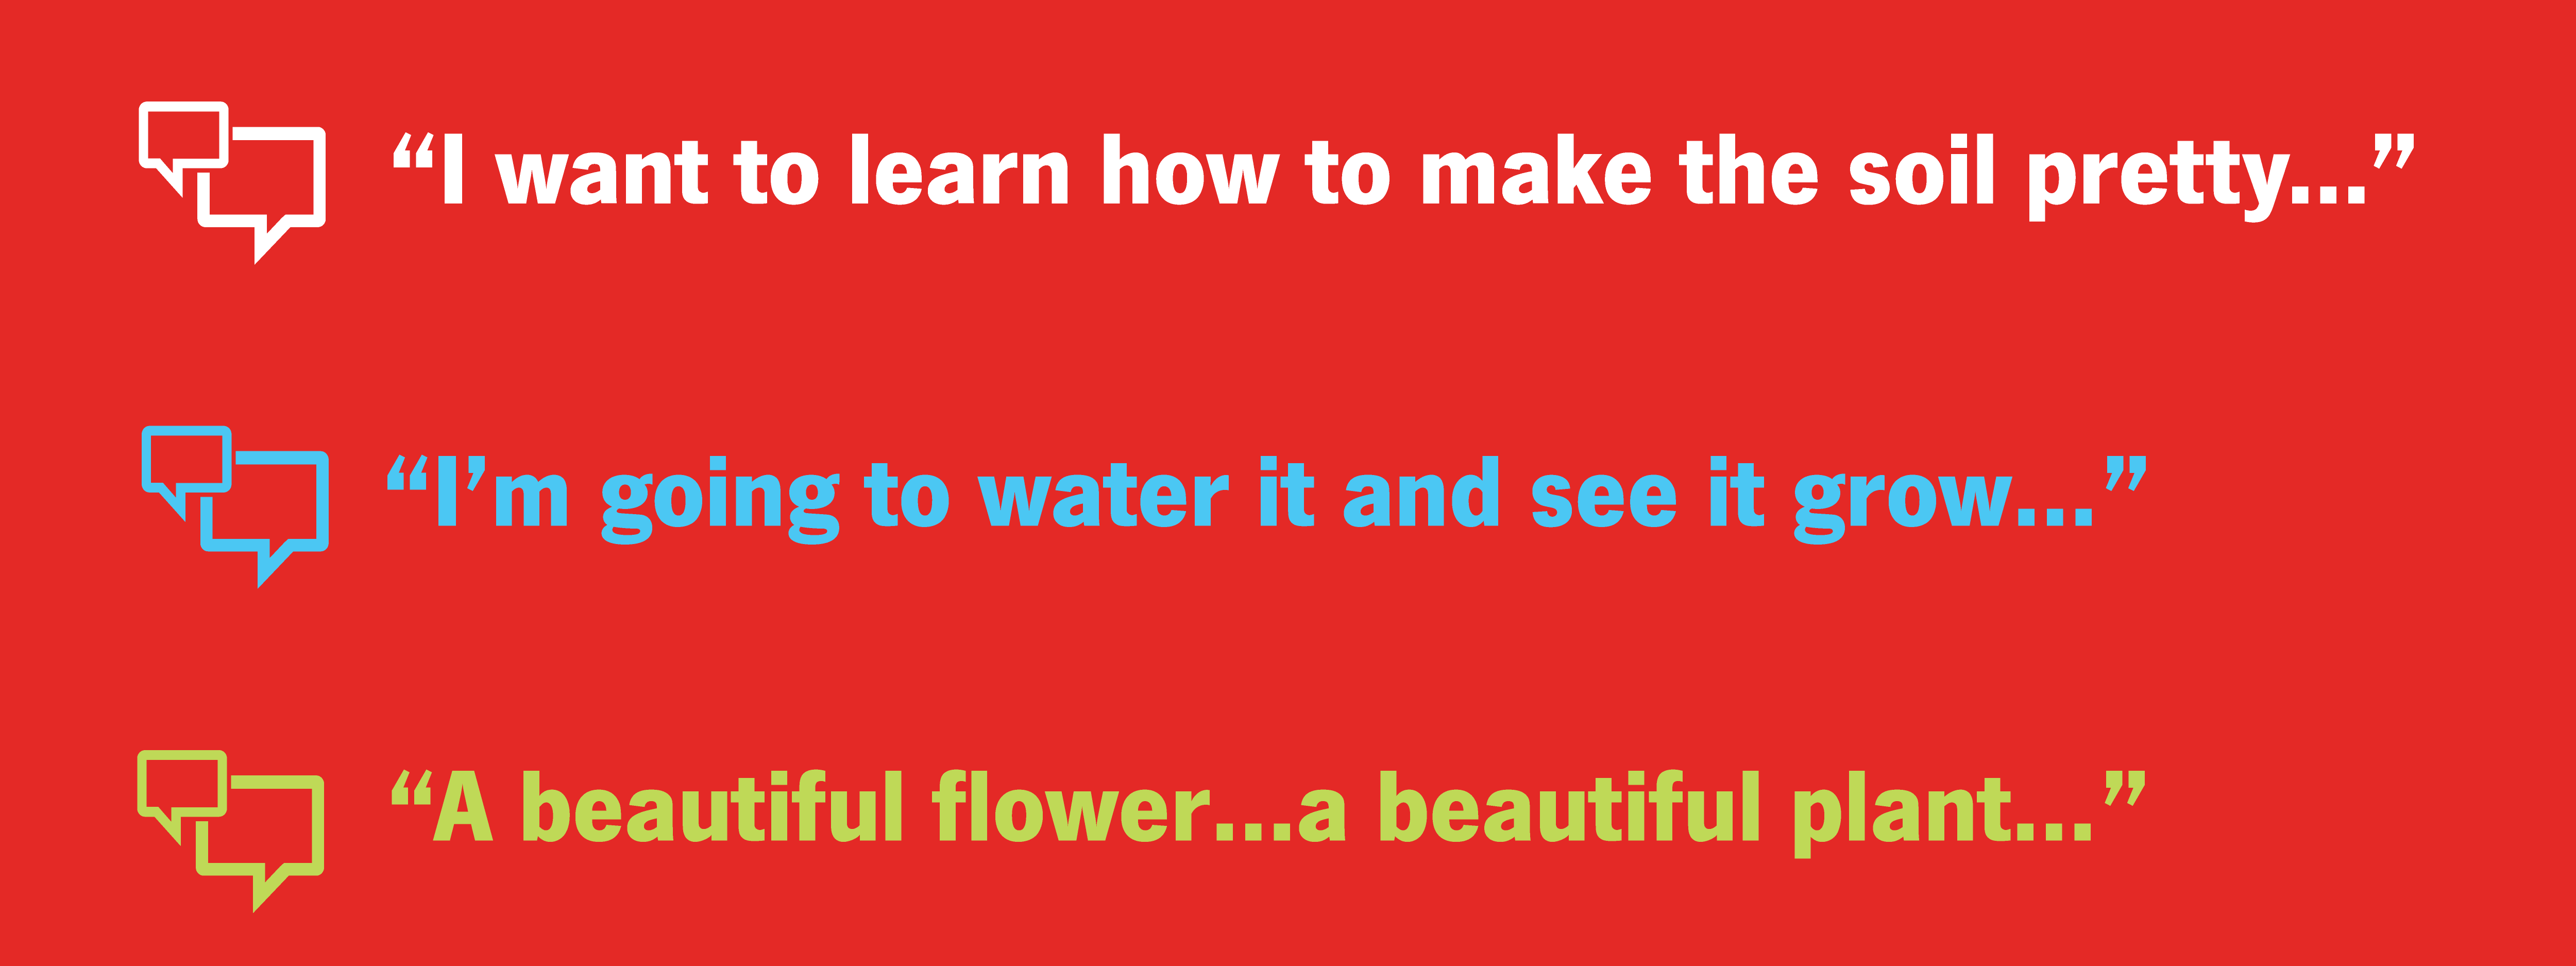 I want to learn how to make the soil pretty. I'm going to water it and see it grow. A beautiful flower...a beautiful plant.